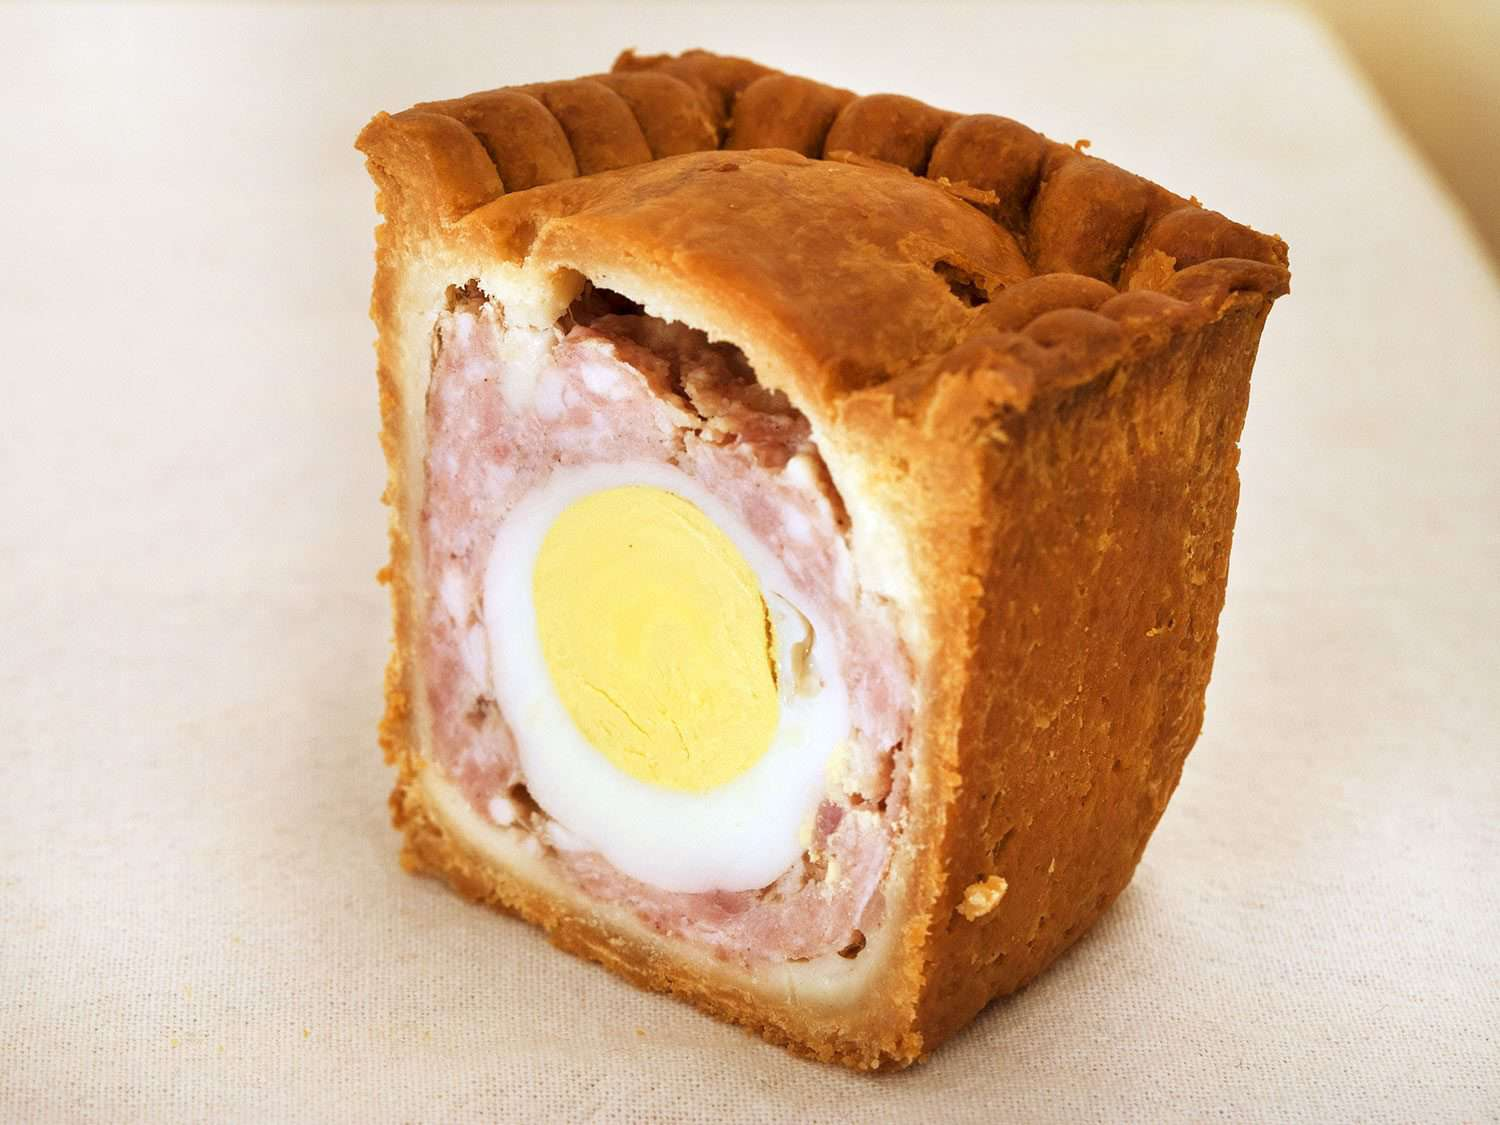 Interior of a gala pie, showing the meat filling surrounding the hard-boiled egg at the center